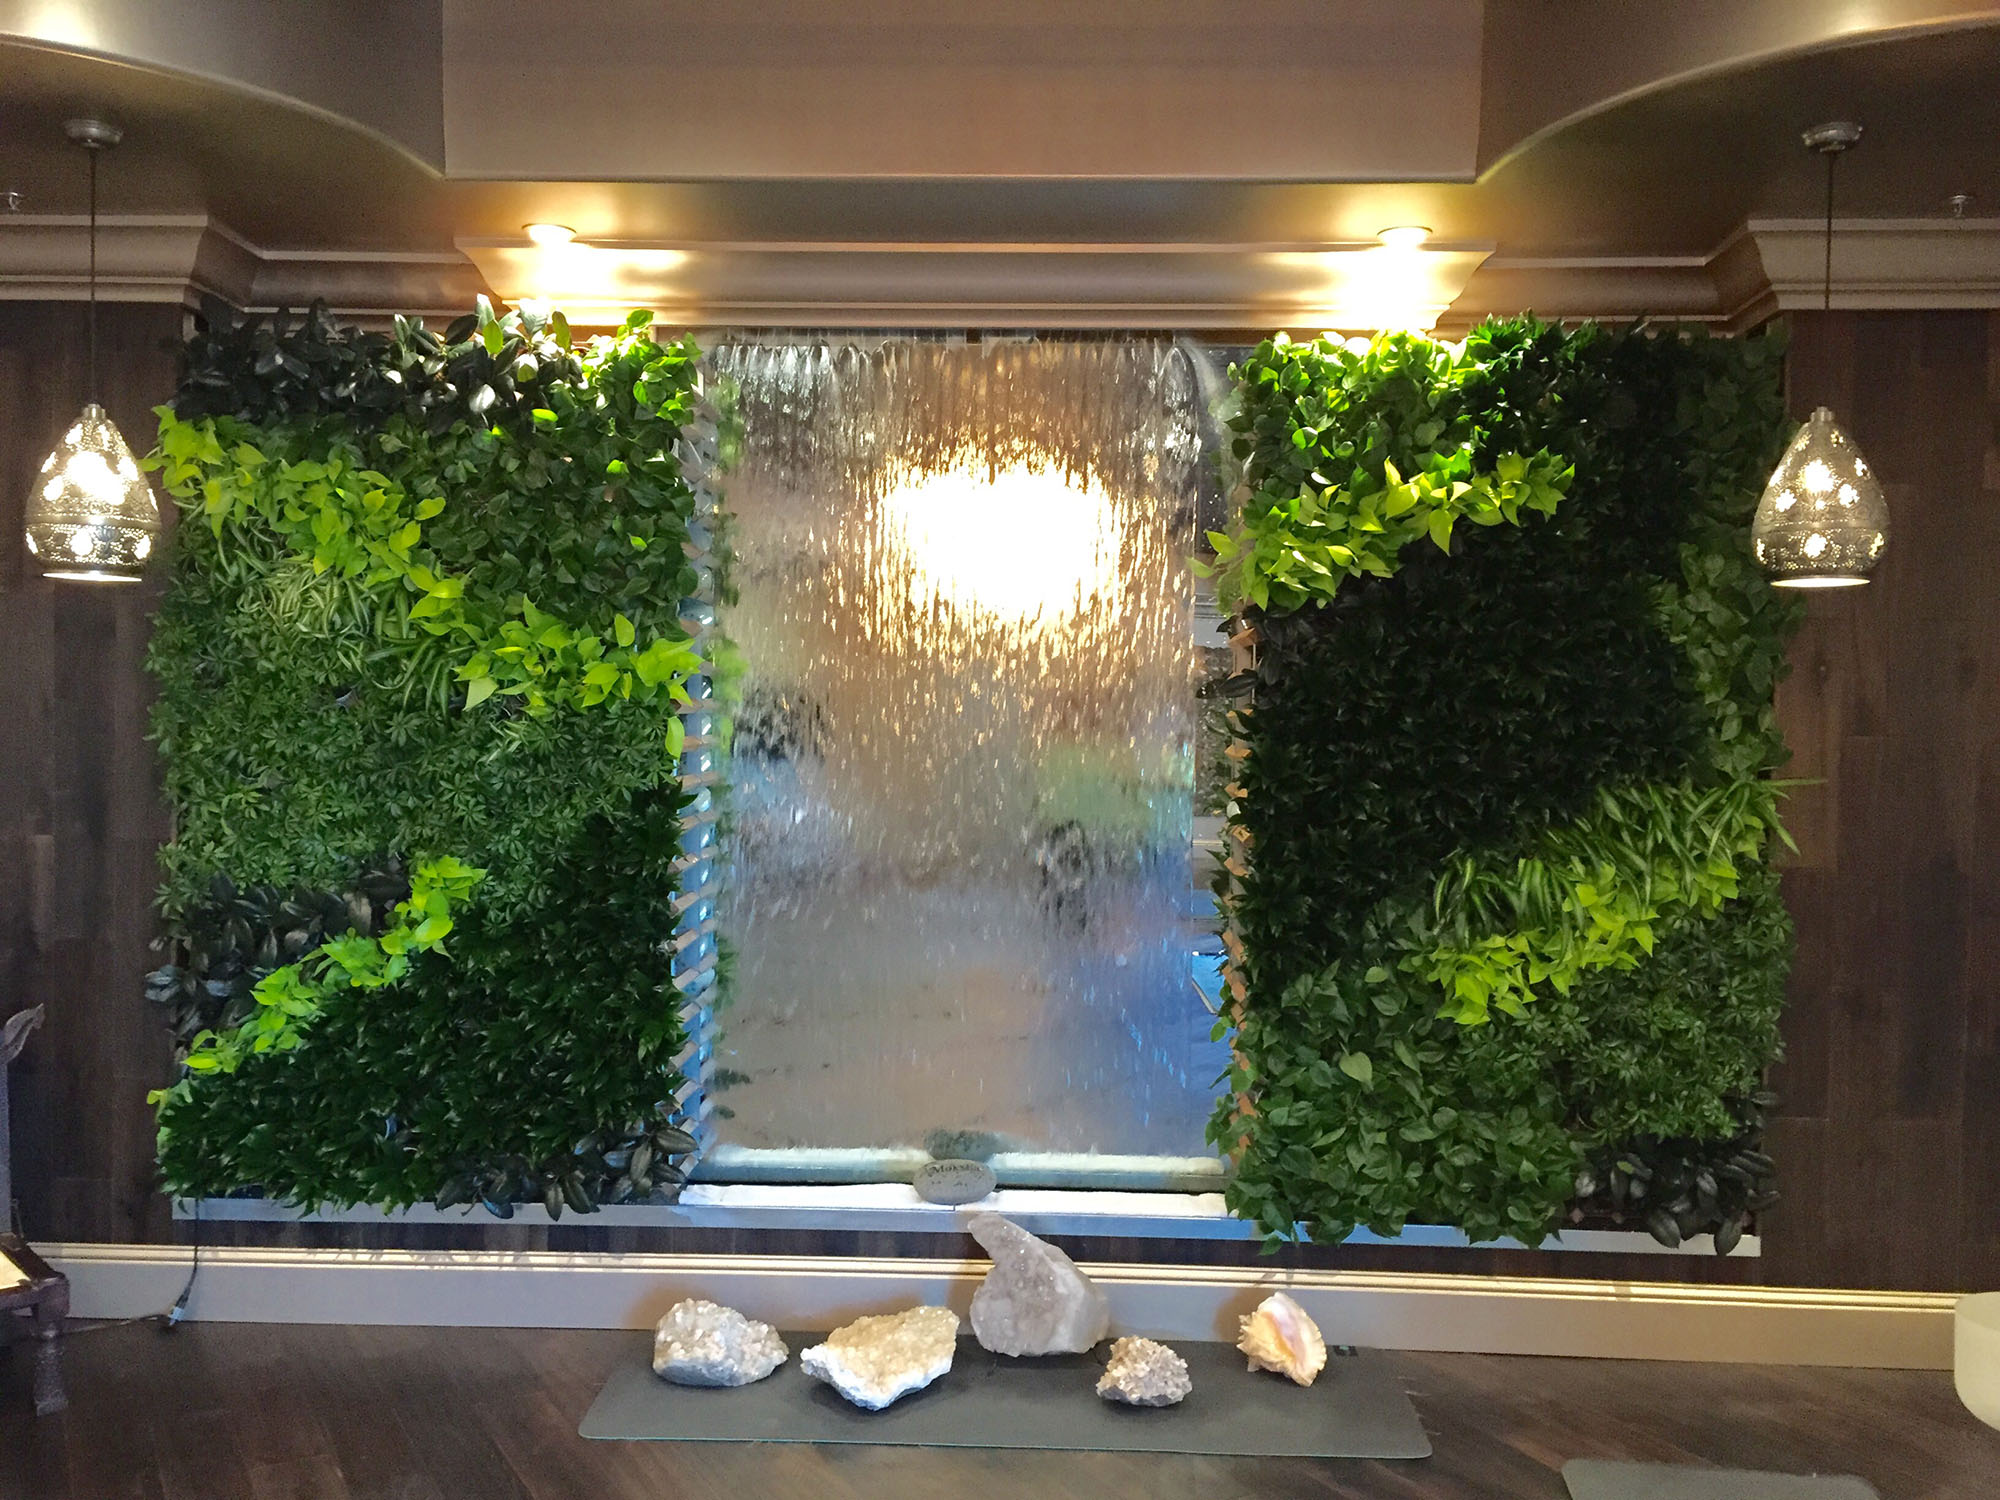 Plant wall surrounding an indoor water feature.